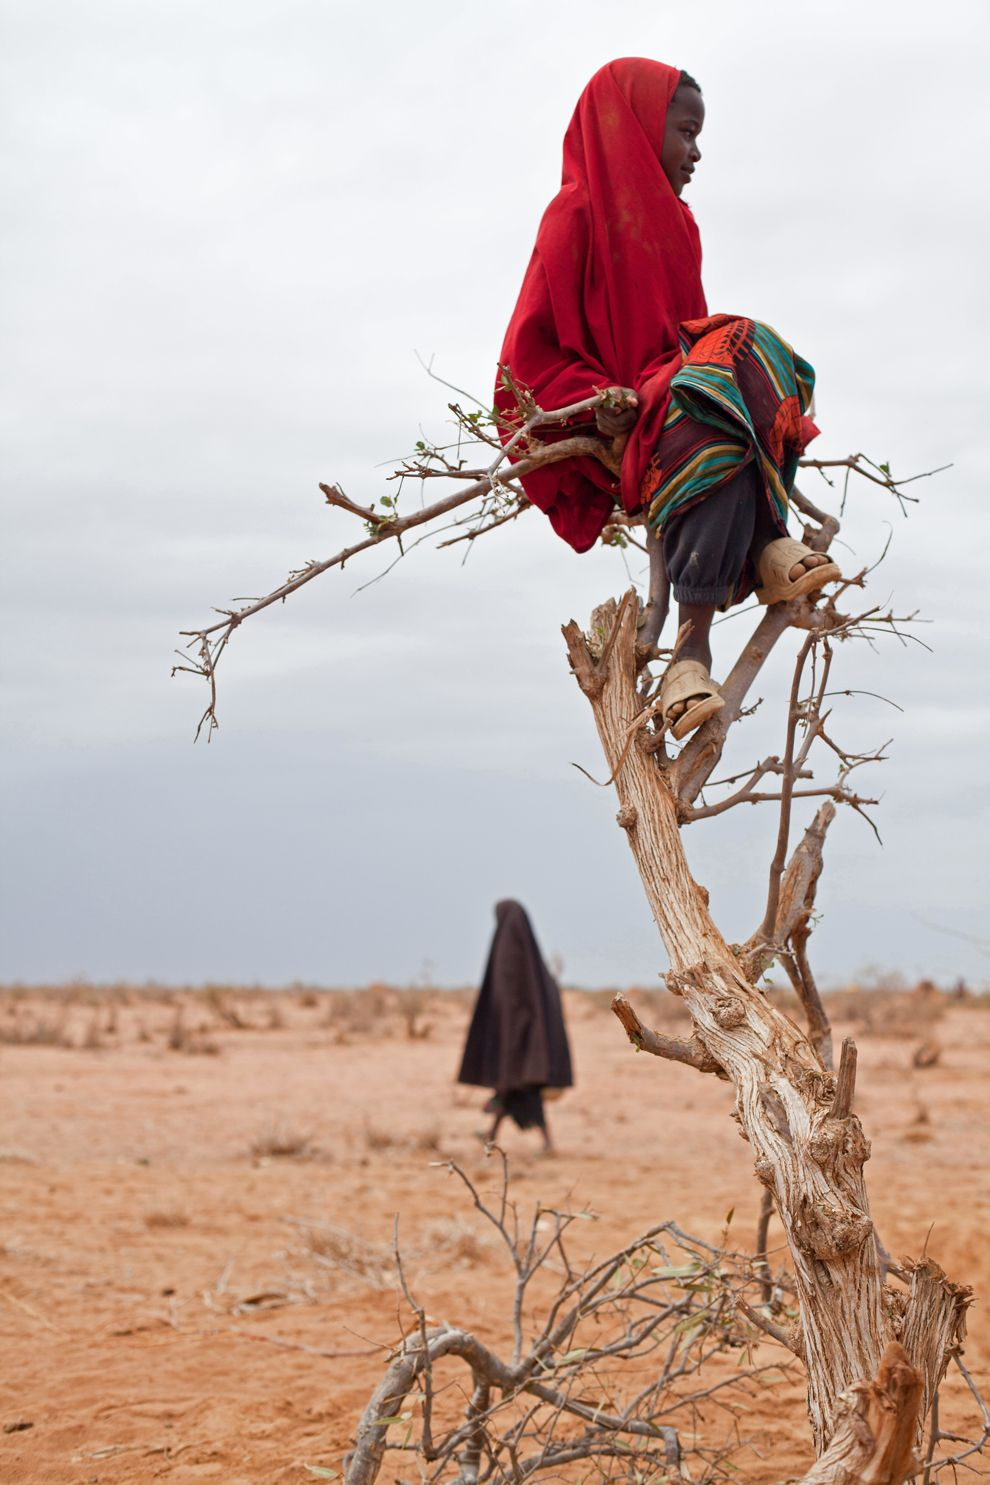 Brendan Bannon Is A Photojournalist On Assignment For Polaris Images I First Went To The Dadaab Refugee Camp Close To The Border Between Kenya And